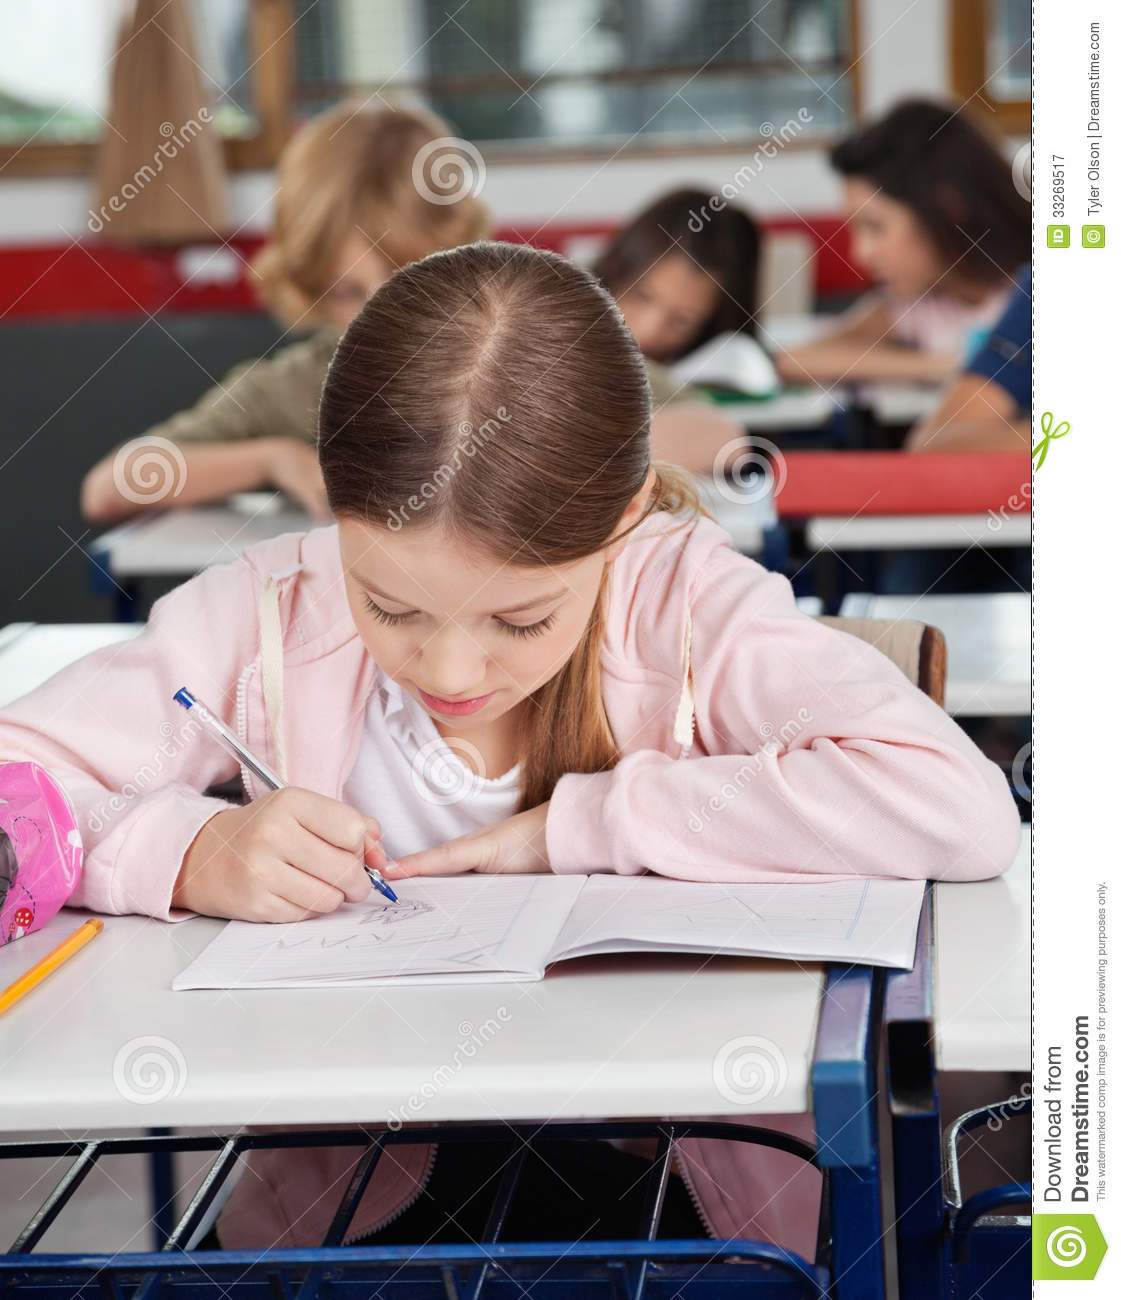 Writing Desk Background ~ Schoolgirl writing at desk royalty free stock photography